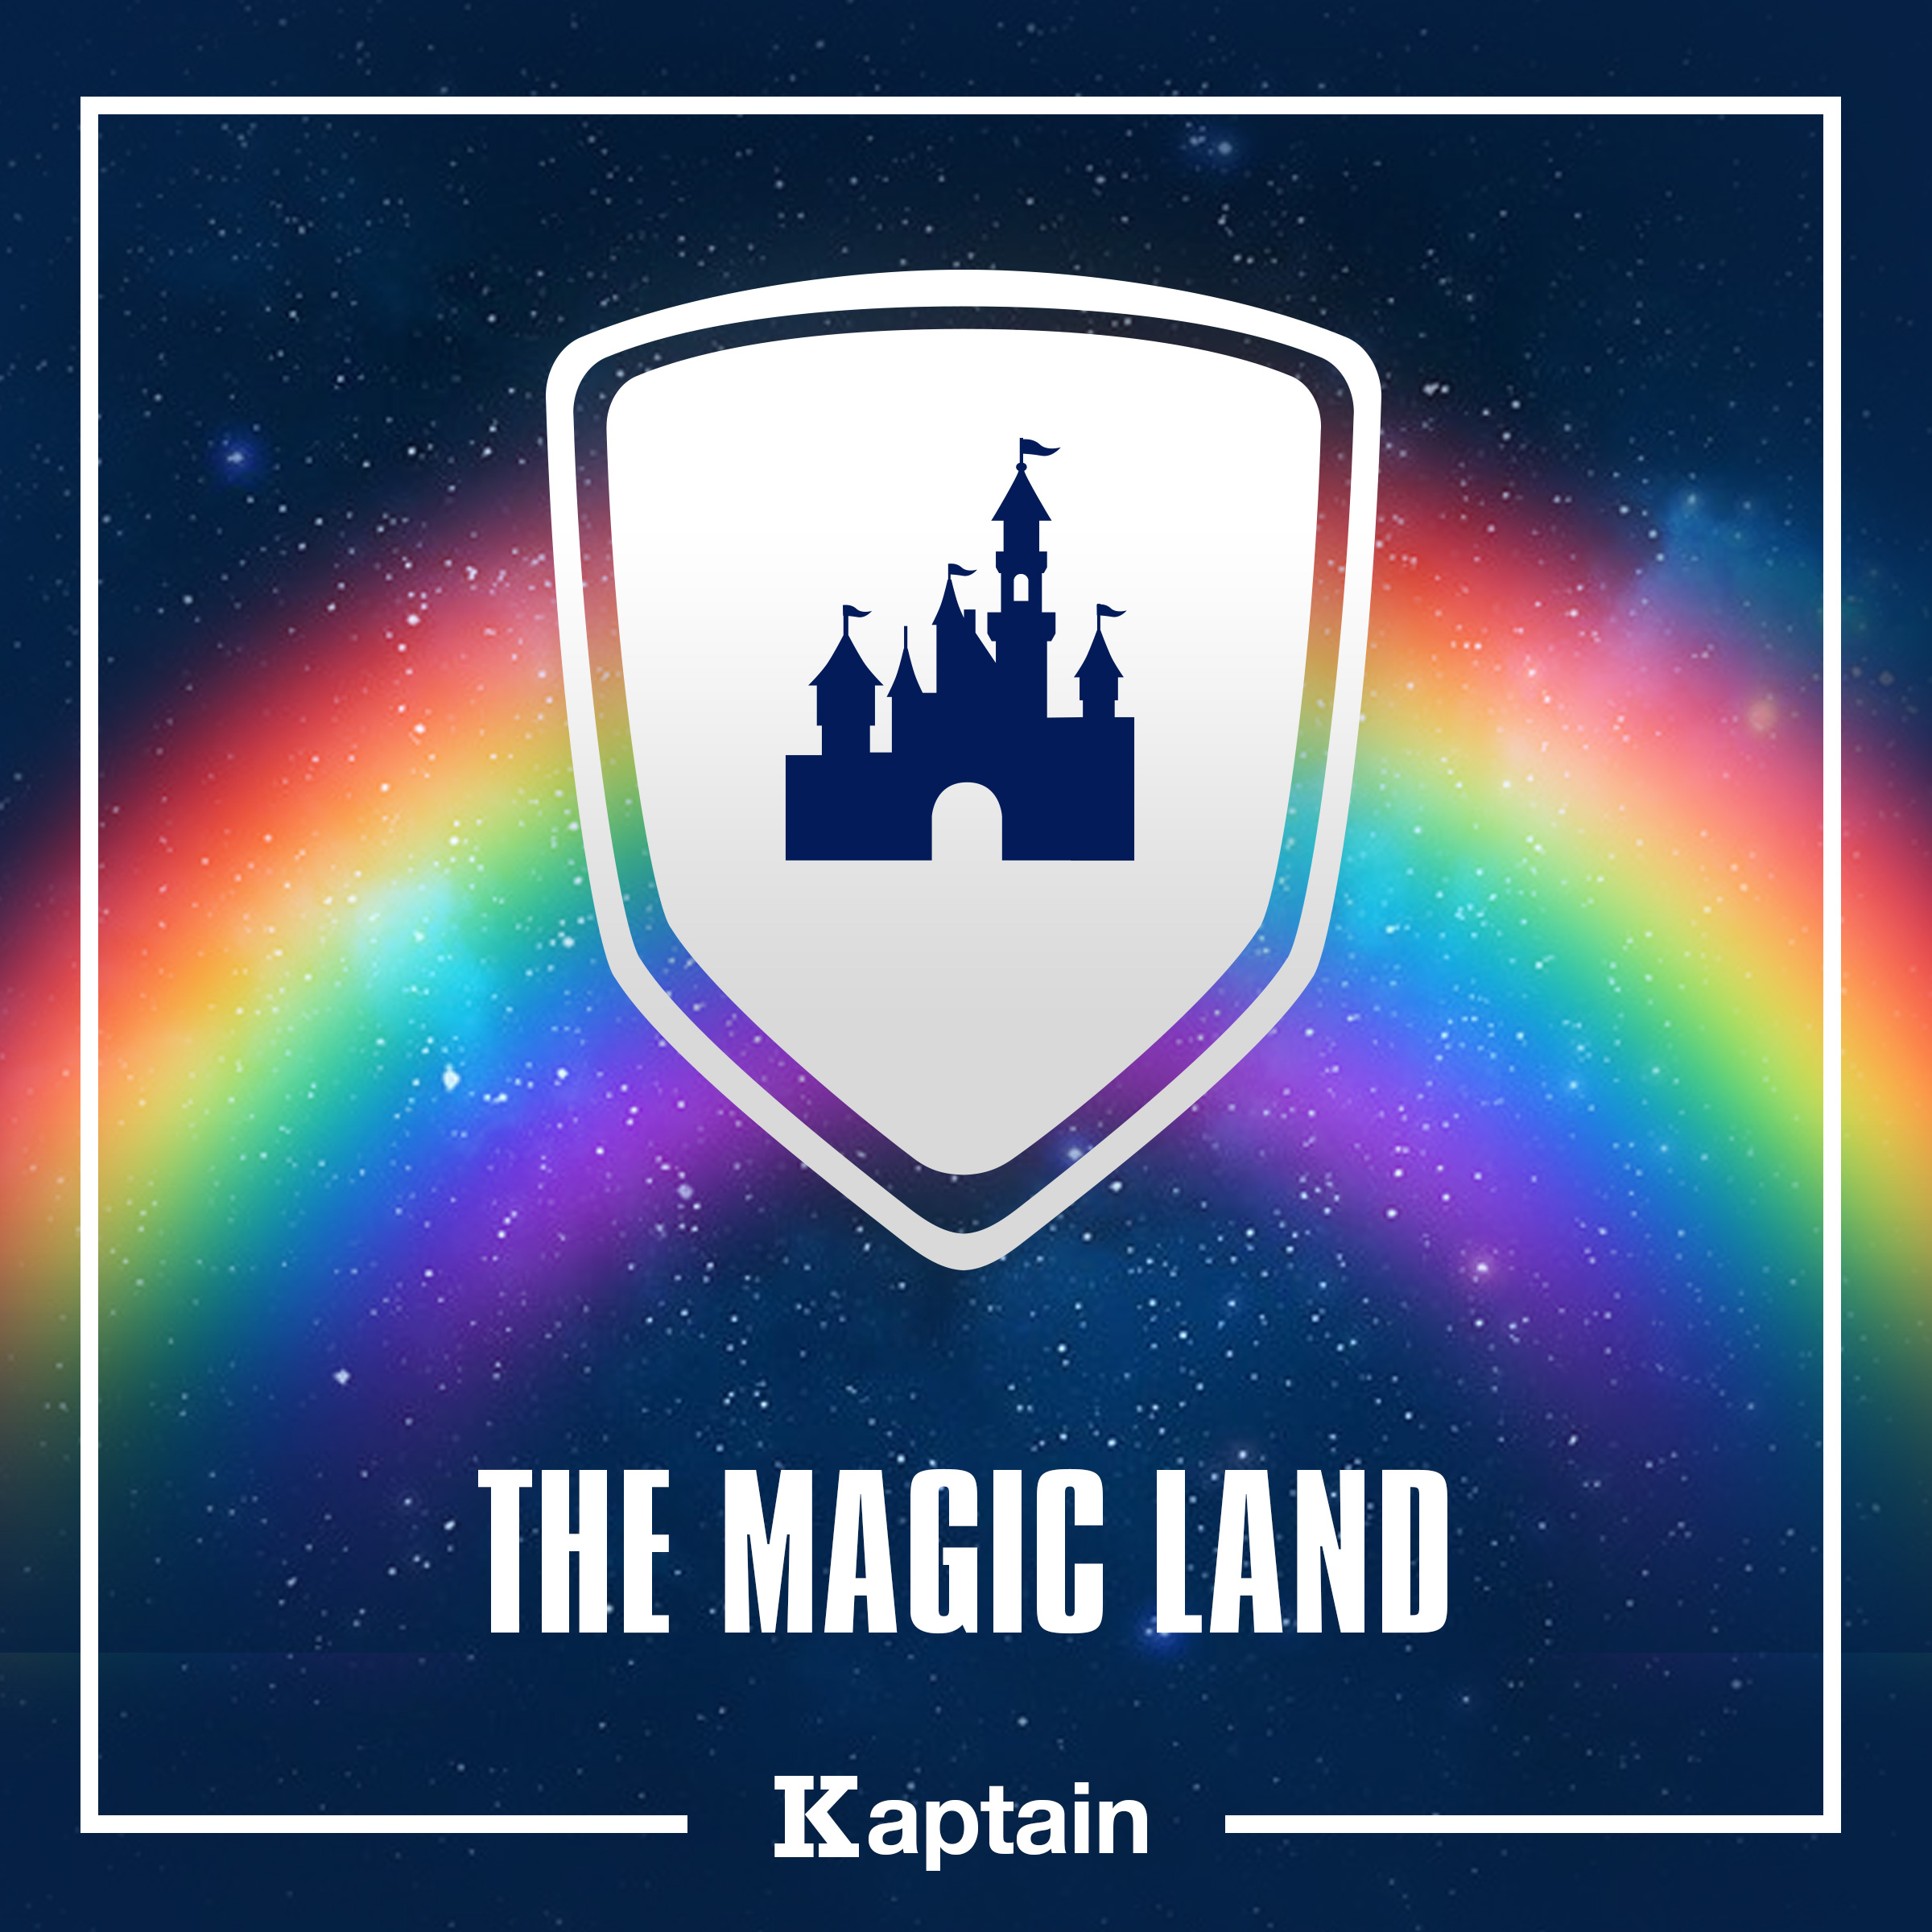 The Magic Land